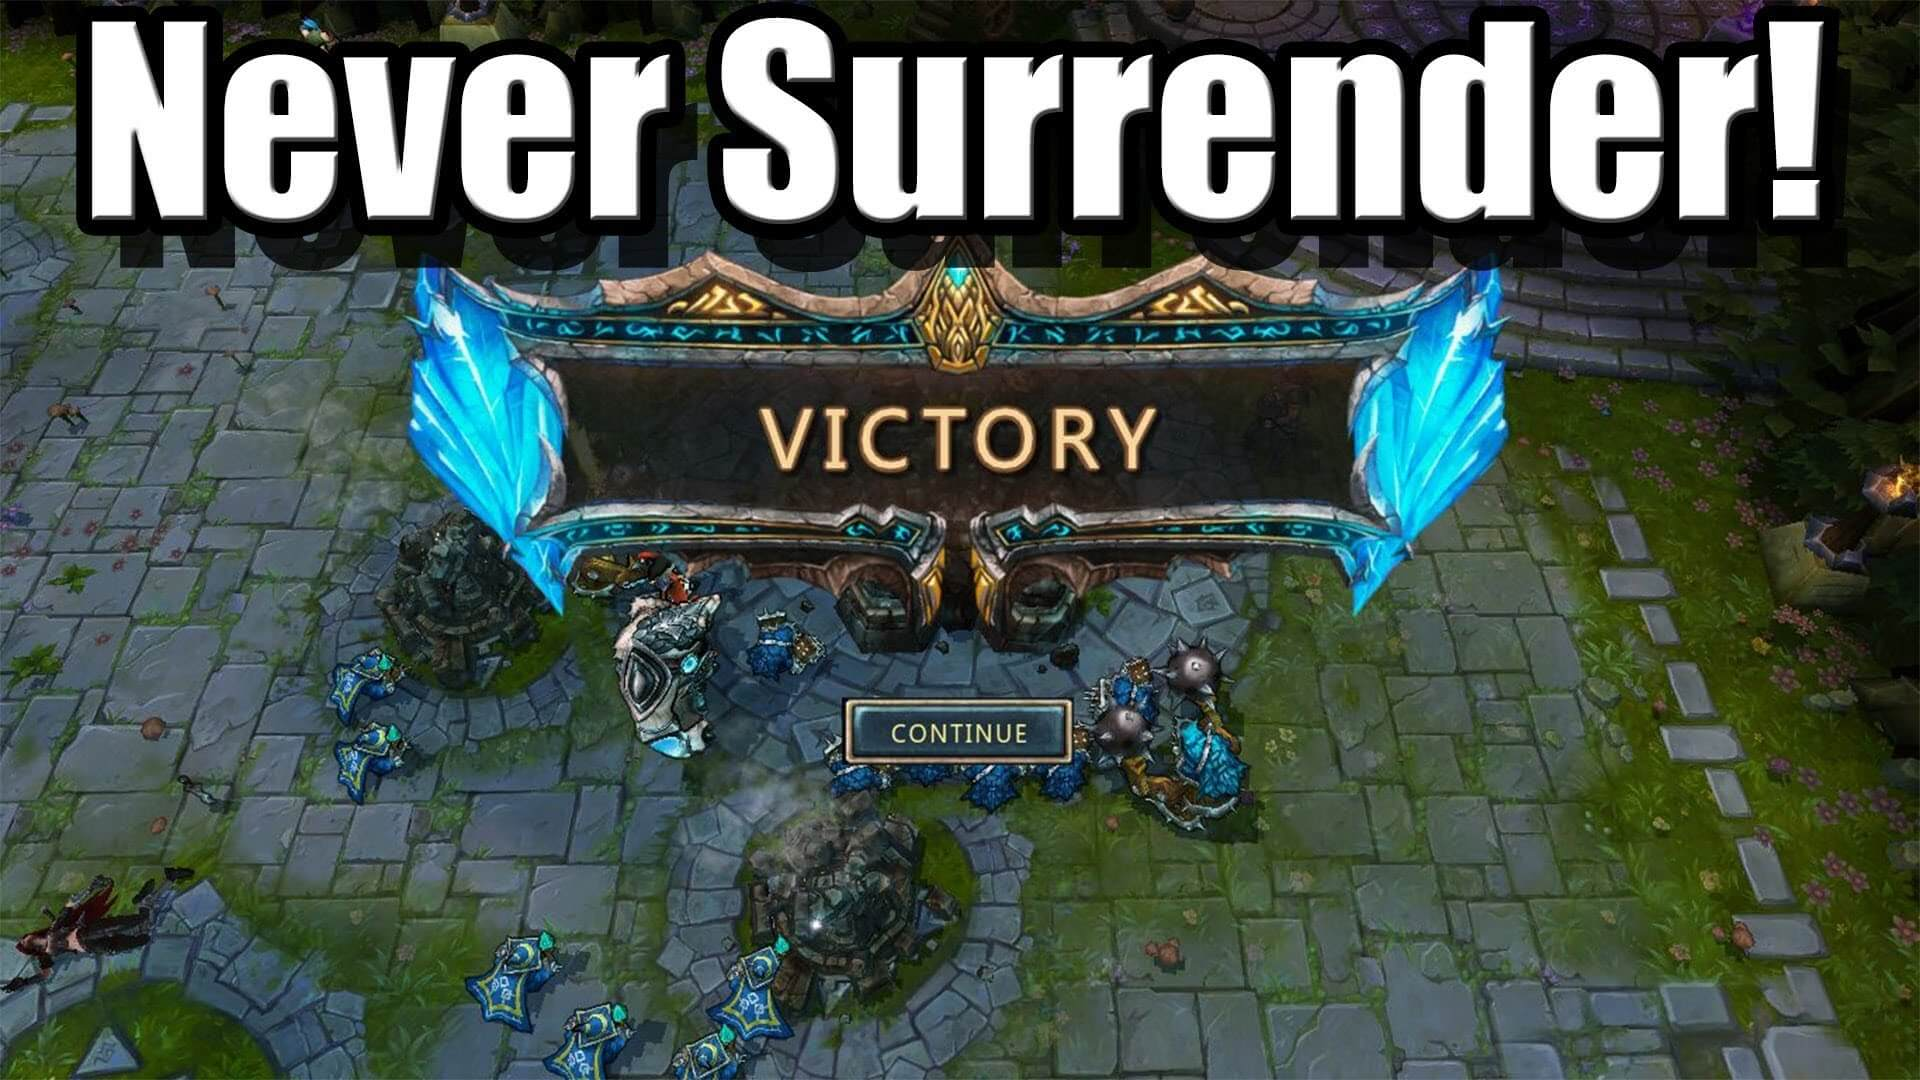 Victory screen with text overlay never surrender